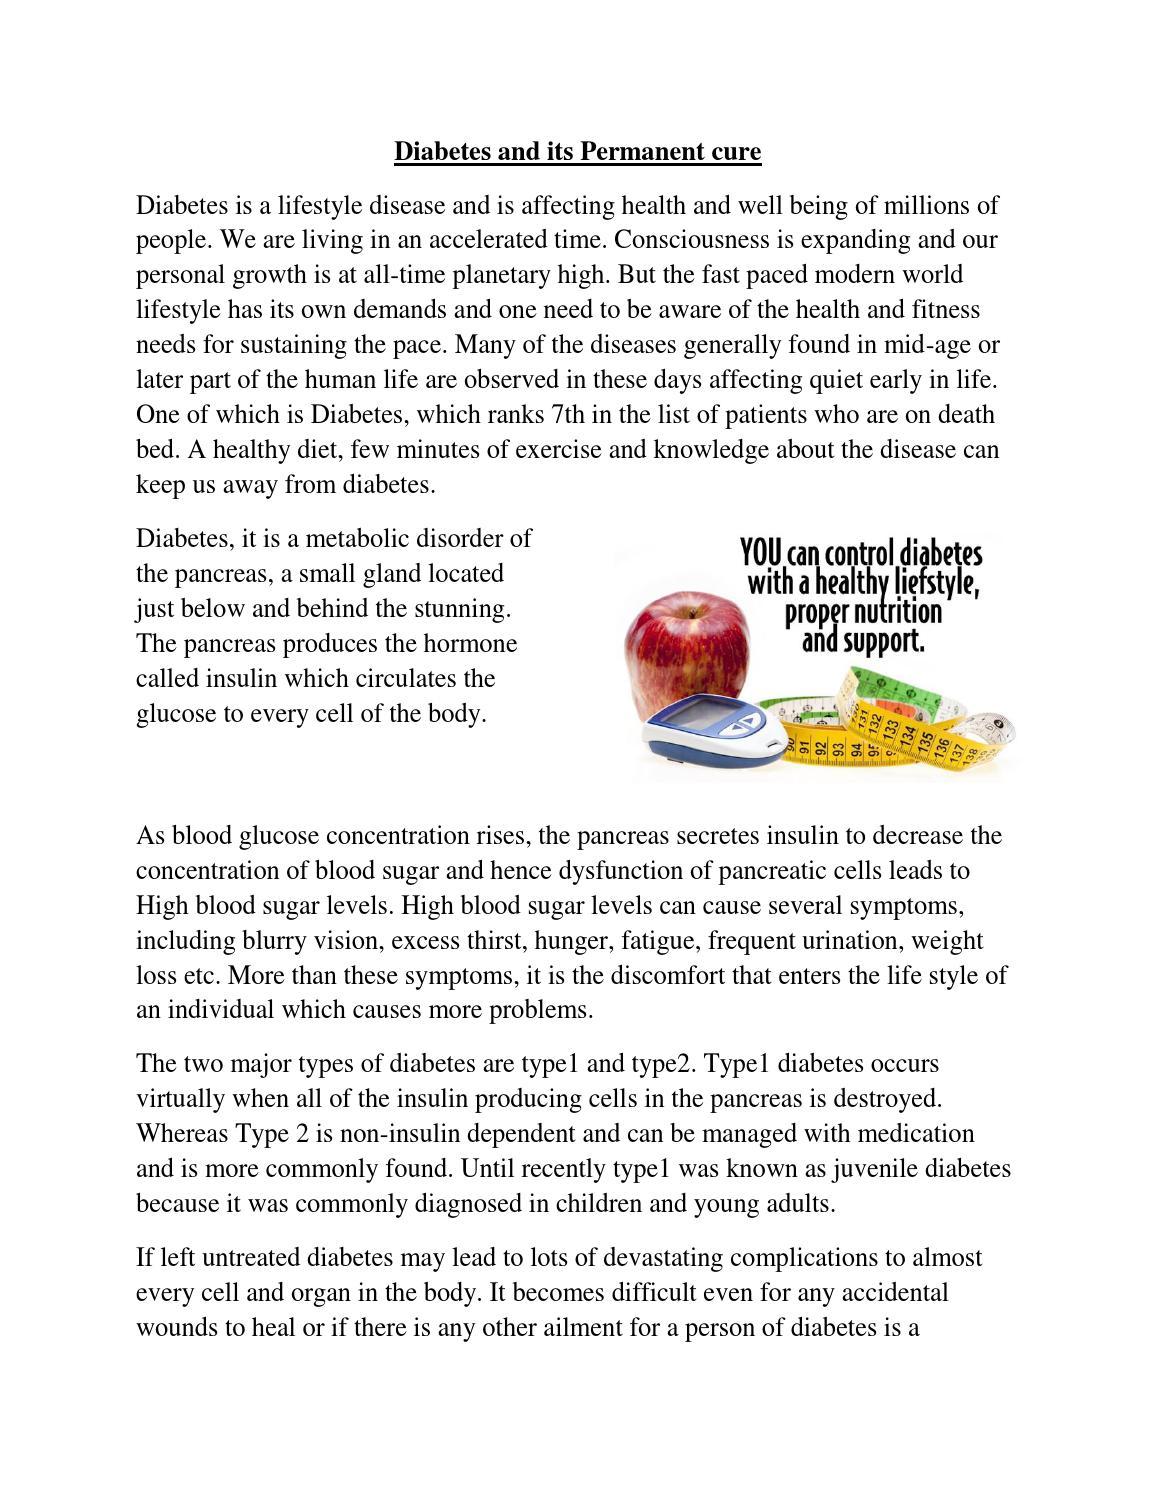 Diabetes And Its Permanent Cure By Onlinehomeocare Issuu